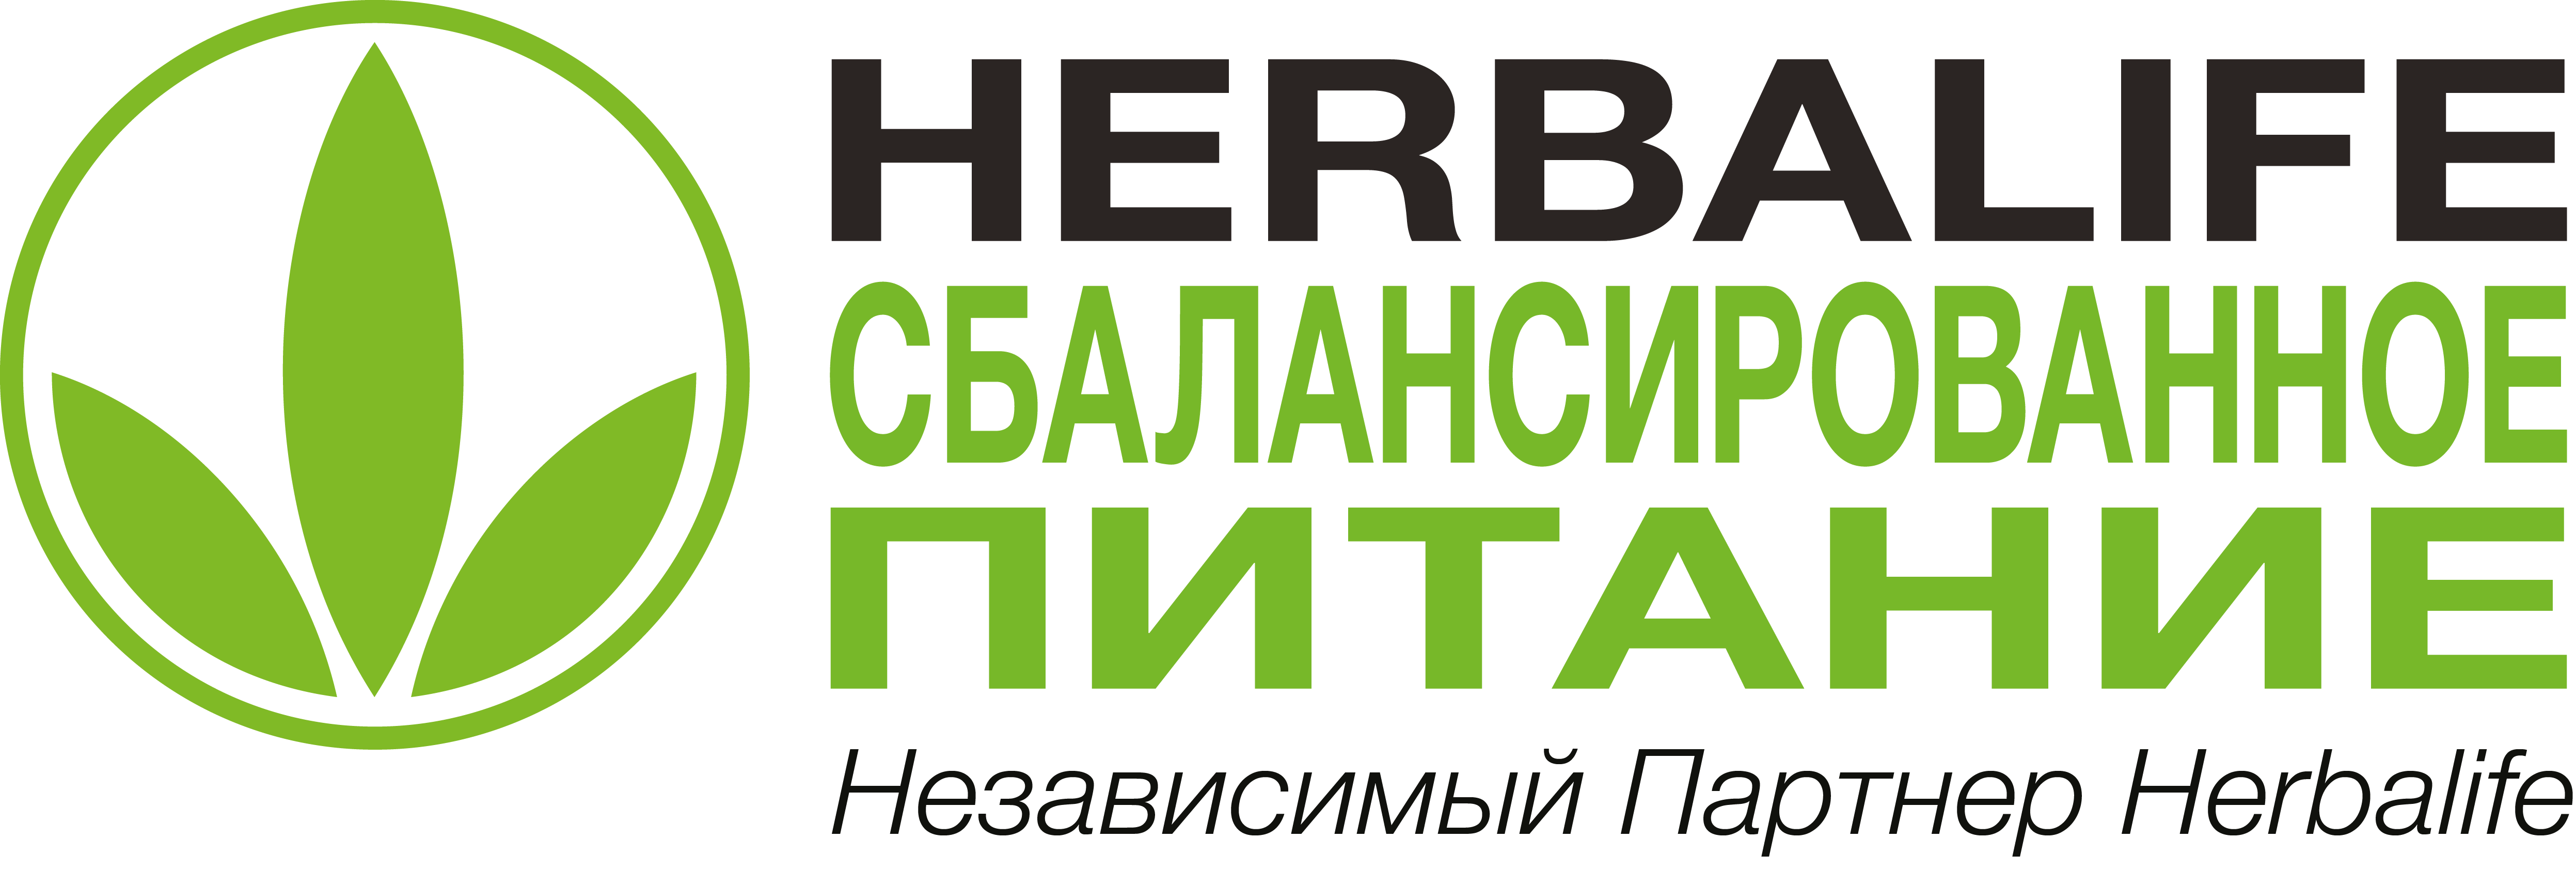 Herbalife - wellness-shop.com.ua